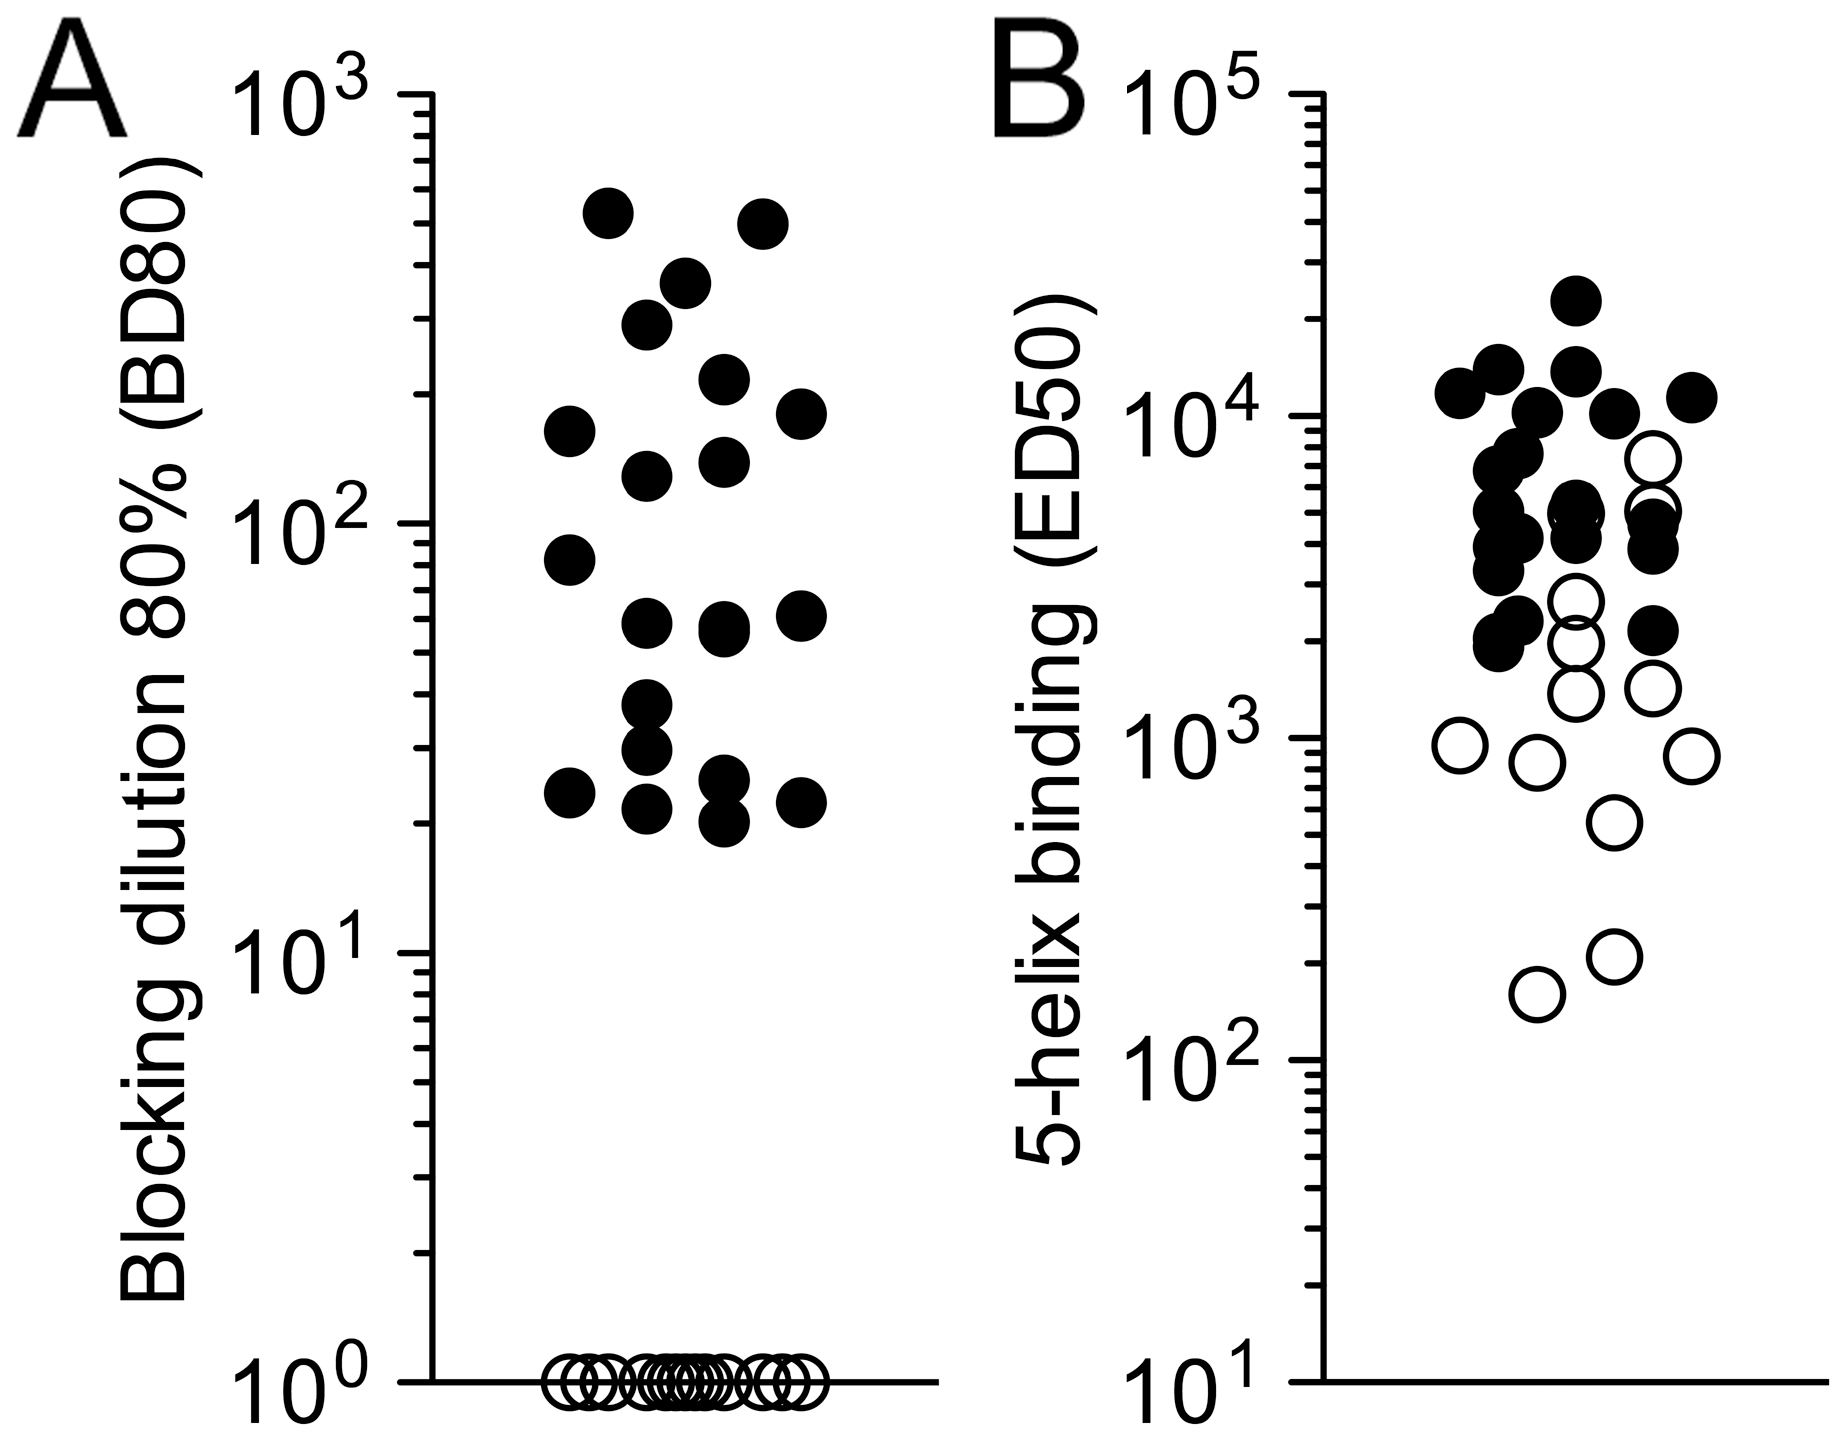 Detection of HK20-like antibodies in patient sera.